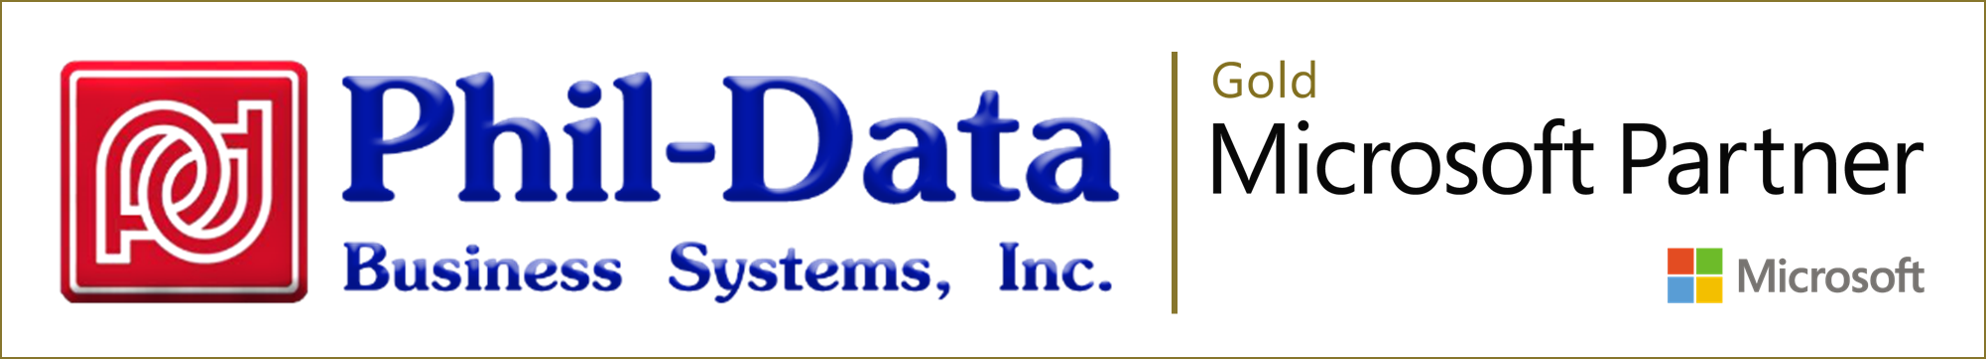 Phil-Data Business Systems, Inc.